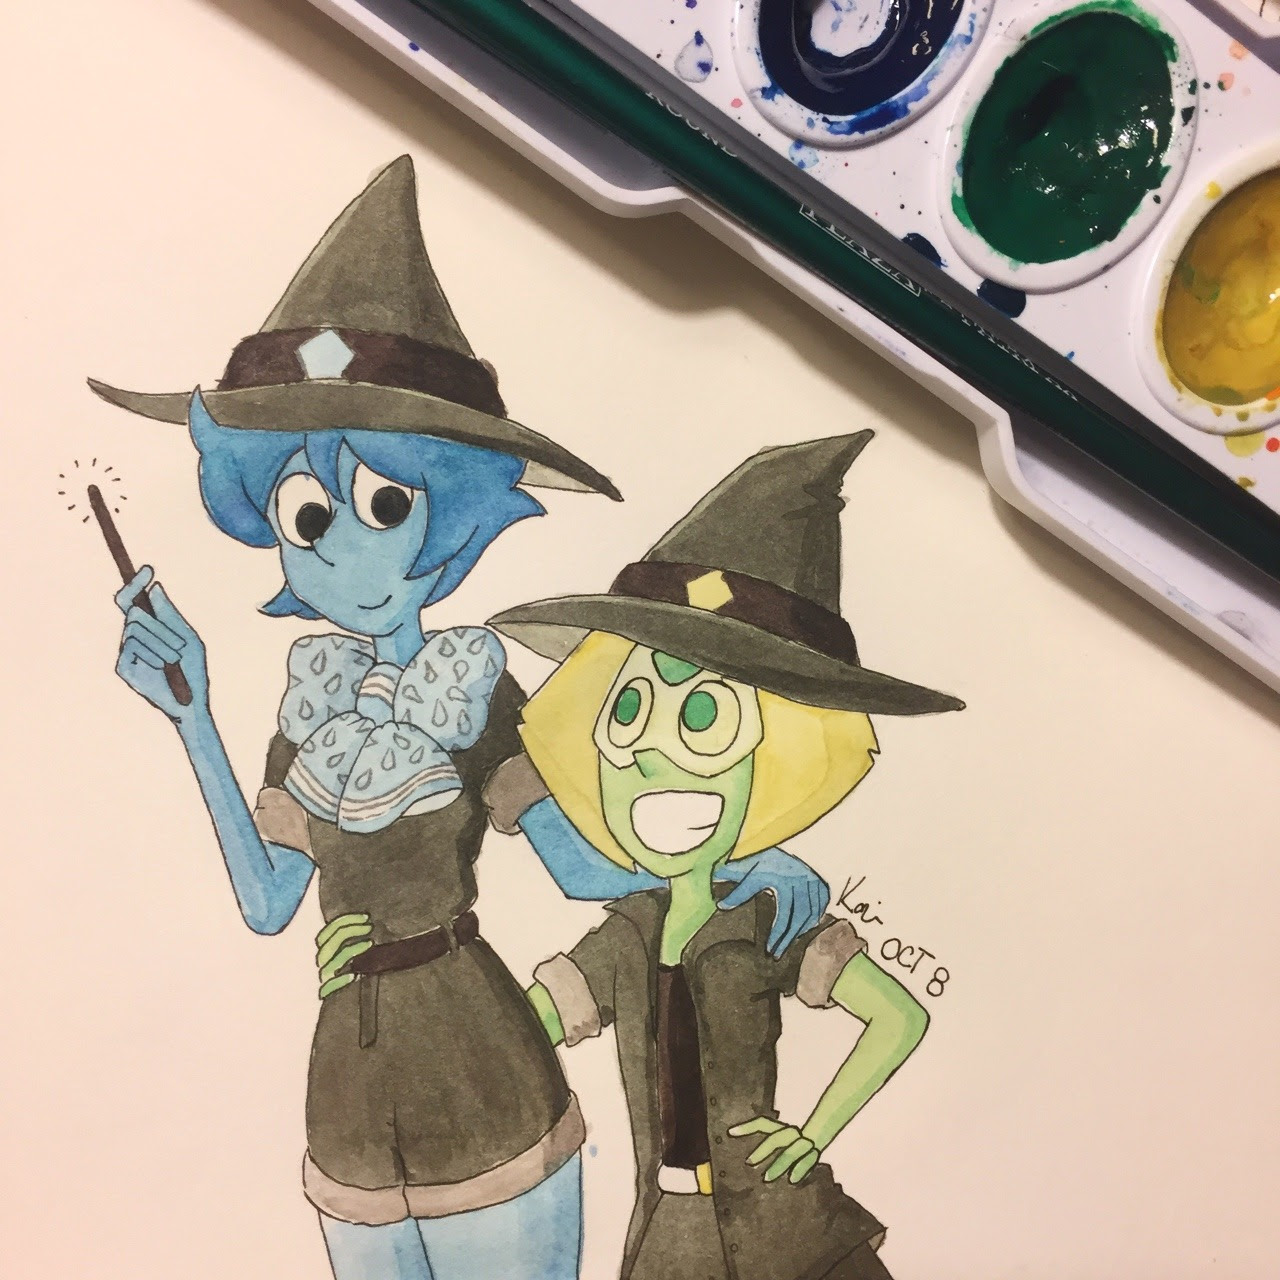 Inktober Day 8! (Still catching up y'all) Camper/ Scout Witch Naturally, Lapis and Peri in Camp Pining Heart cosplay (with matching witch hats)